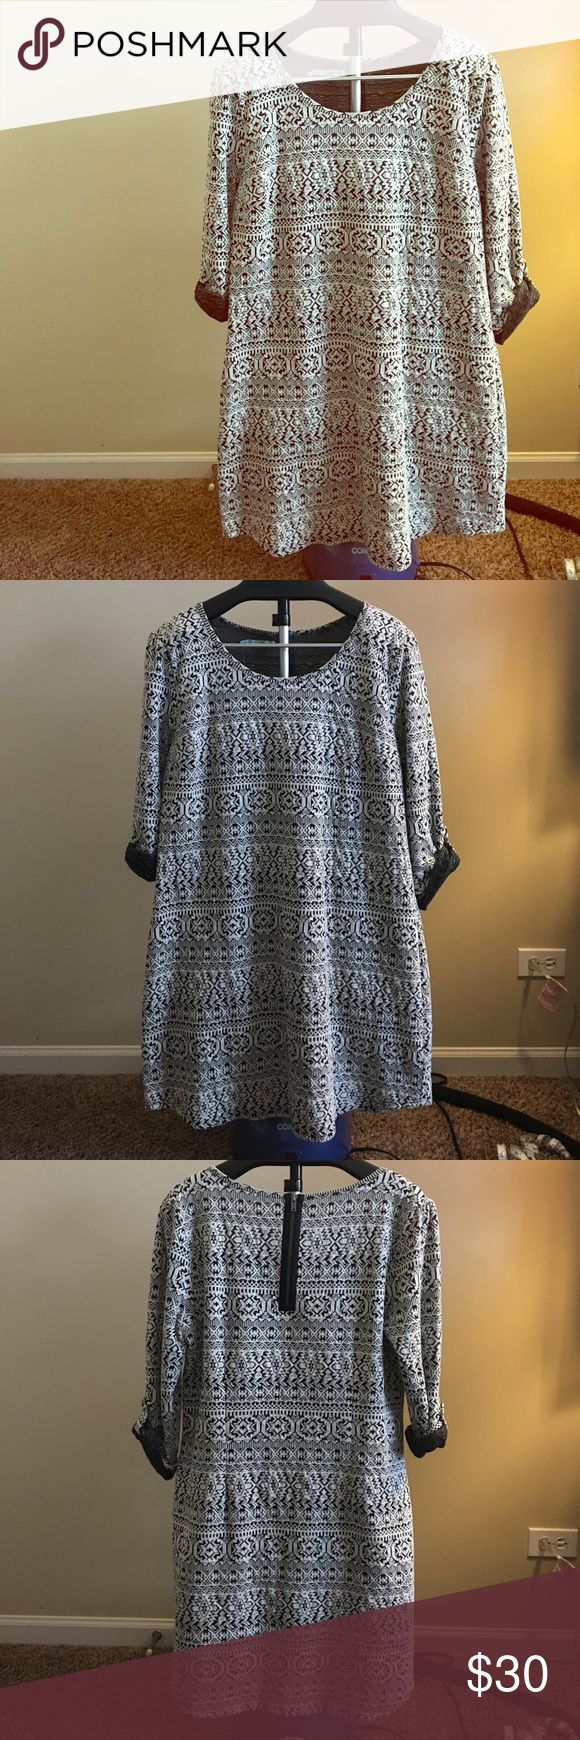 Aztec printed white bodycon dress Lovely dress perfect for parties and going out! Zipper in back to get on and off easily. Never worn. Maurices Dresses